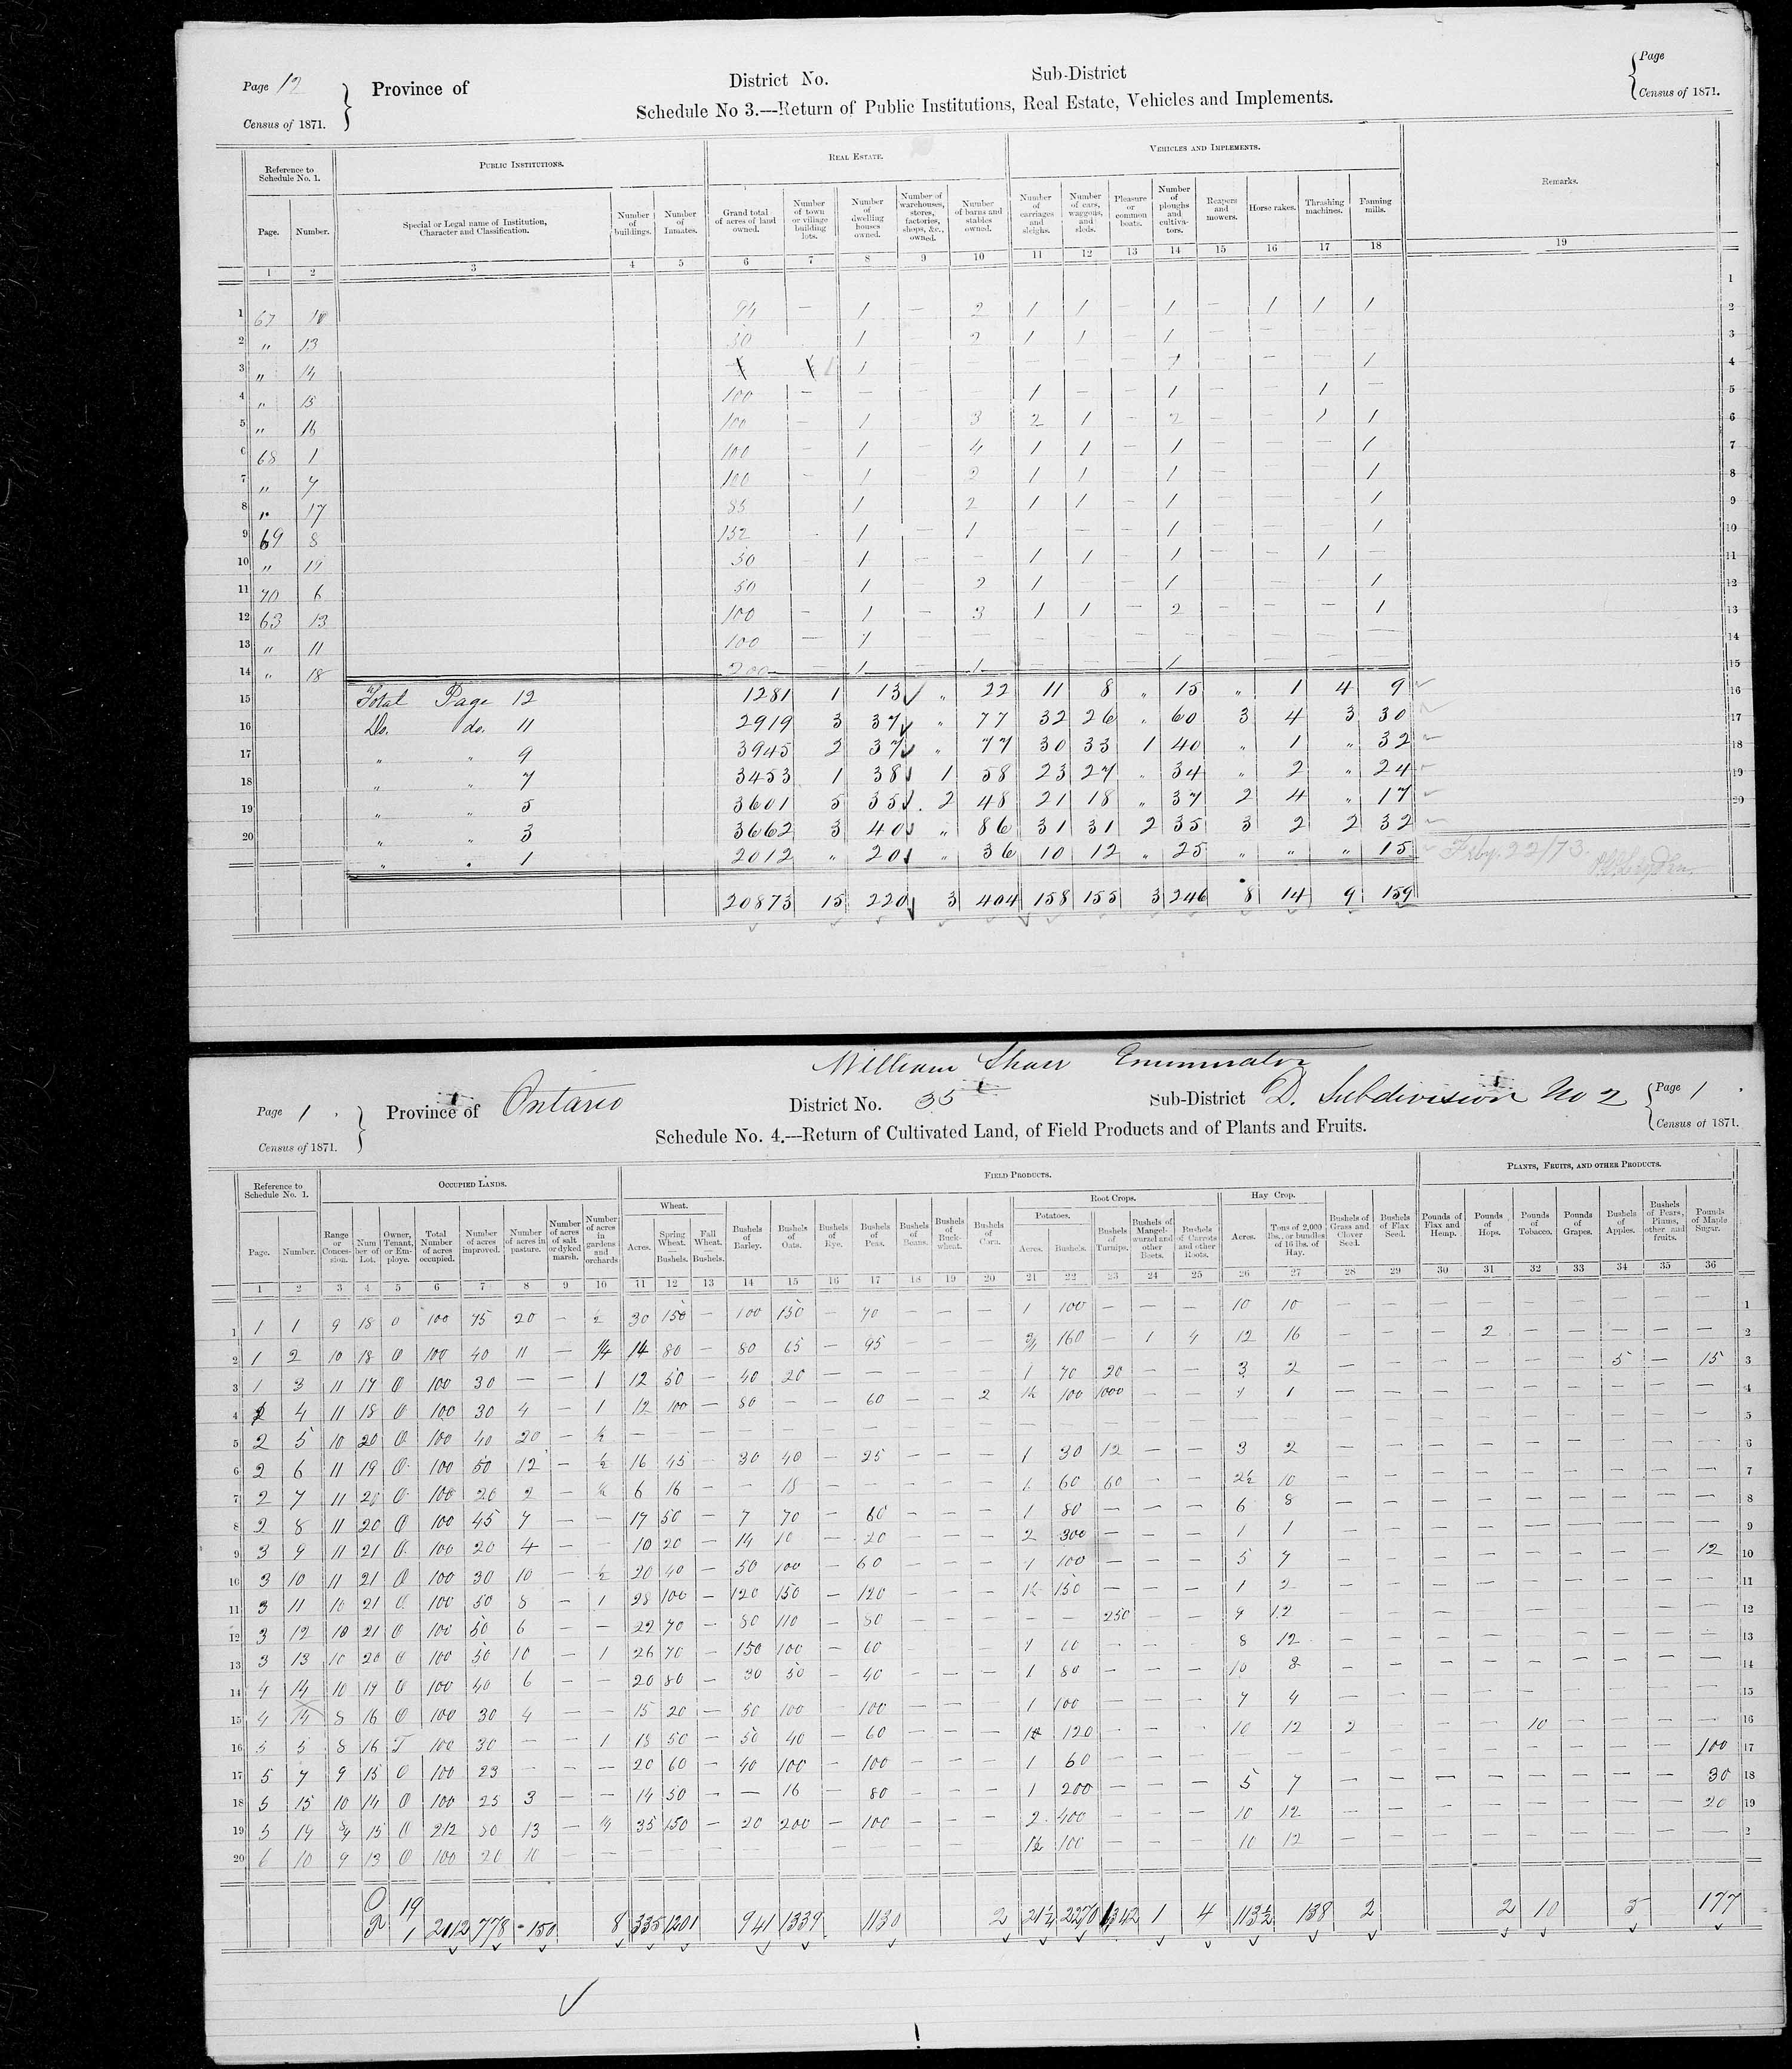 Title: Census of Canada, 1871 - Mikan Number: 142105 - Microform: c-9949